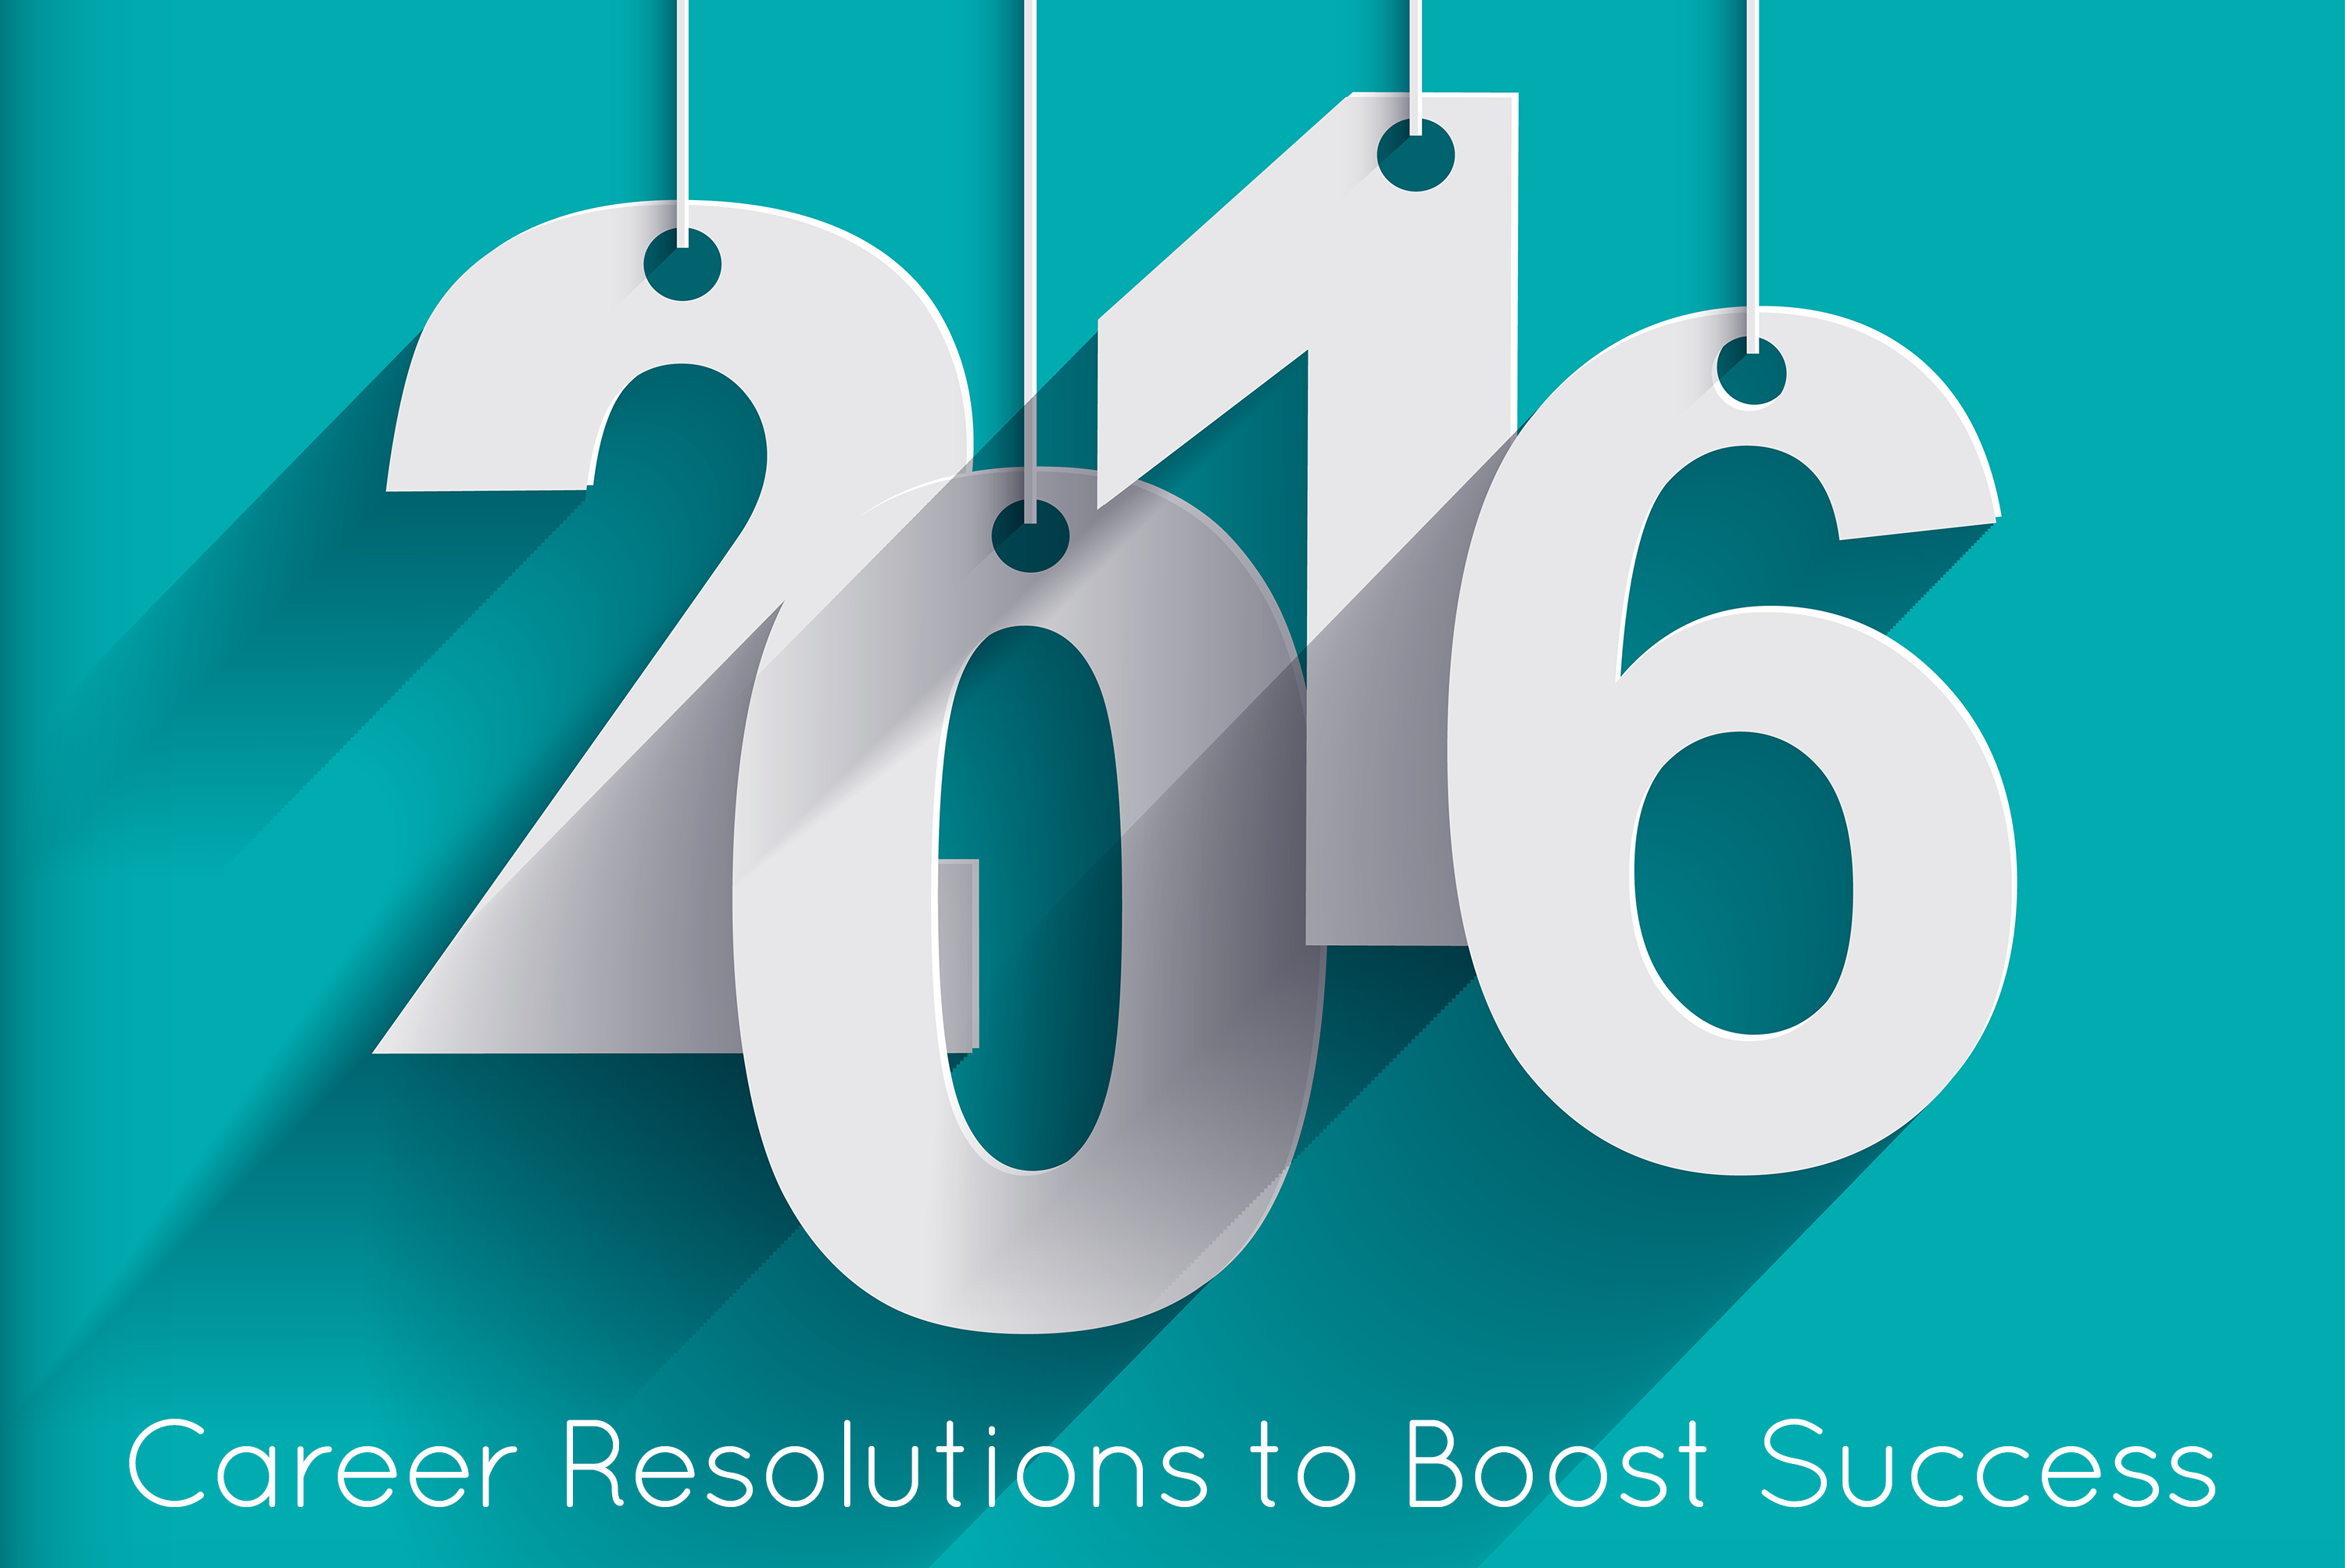 Career Resolutions to Boost Success in 2016